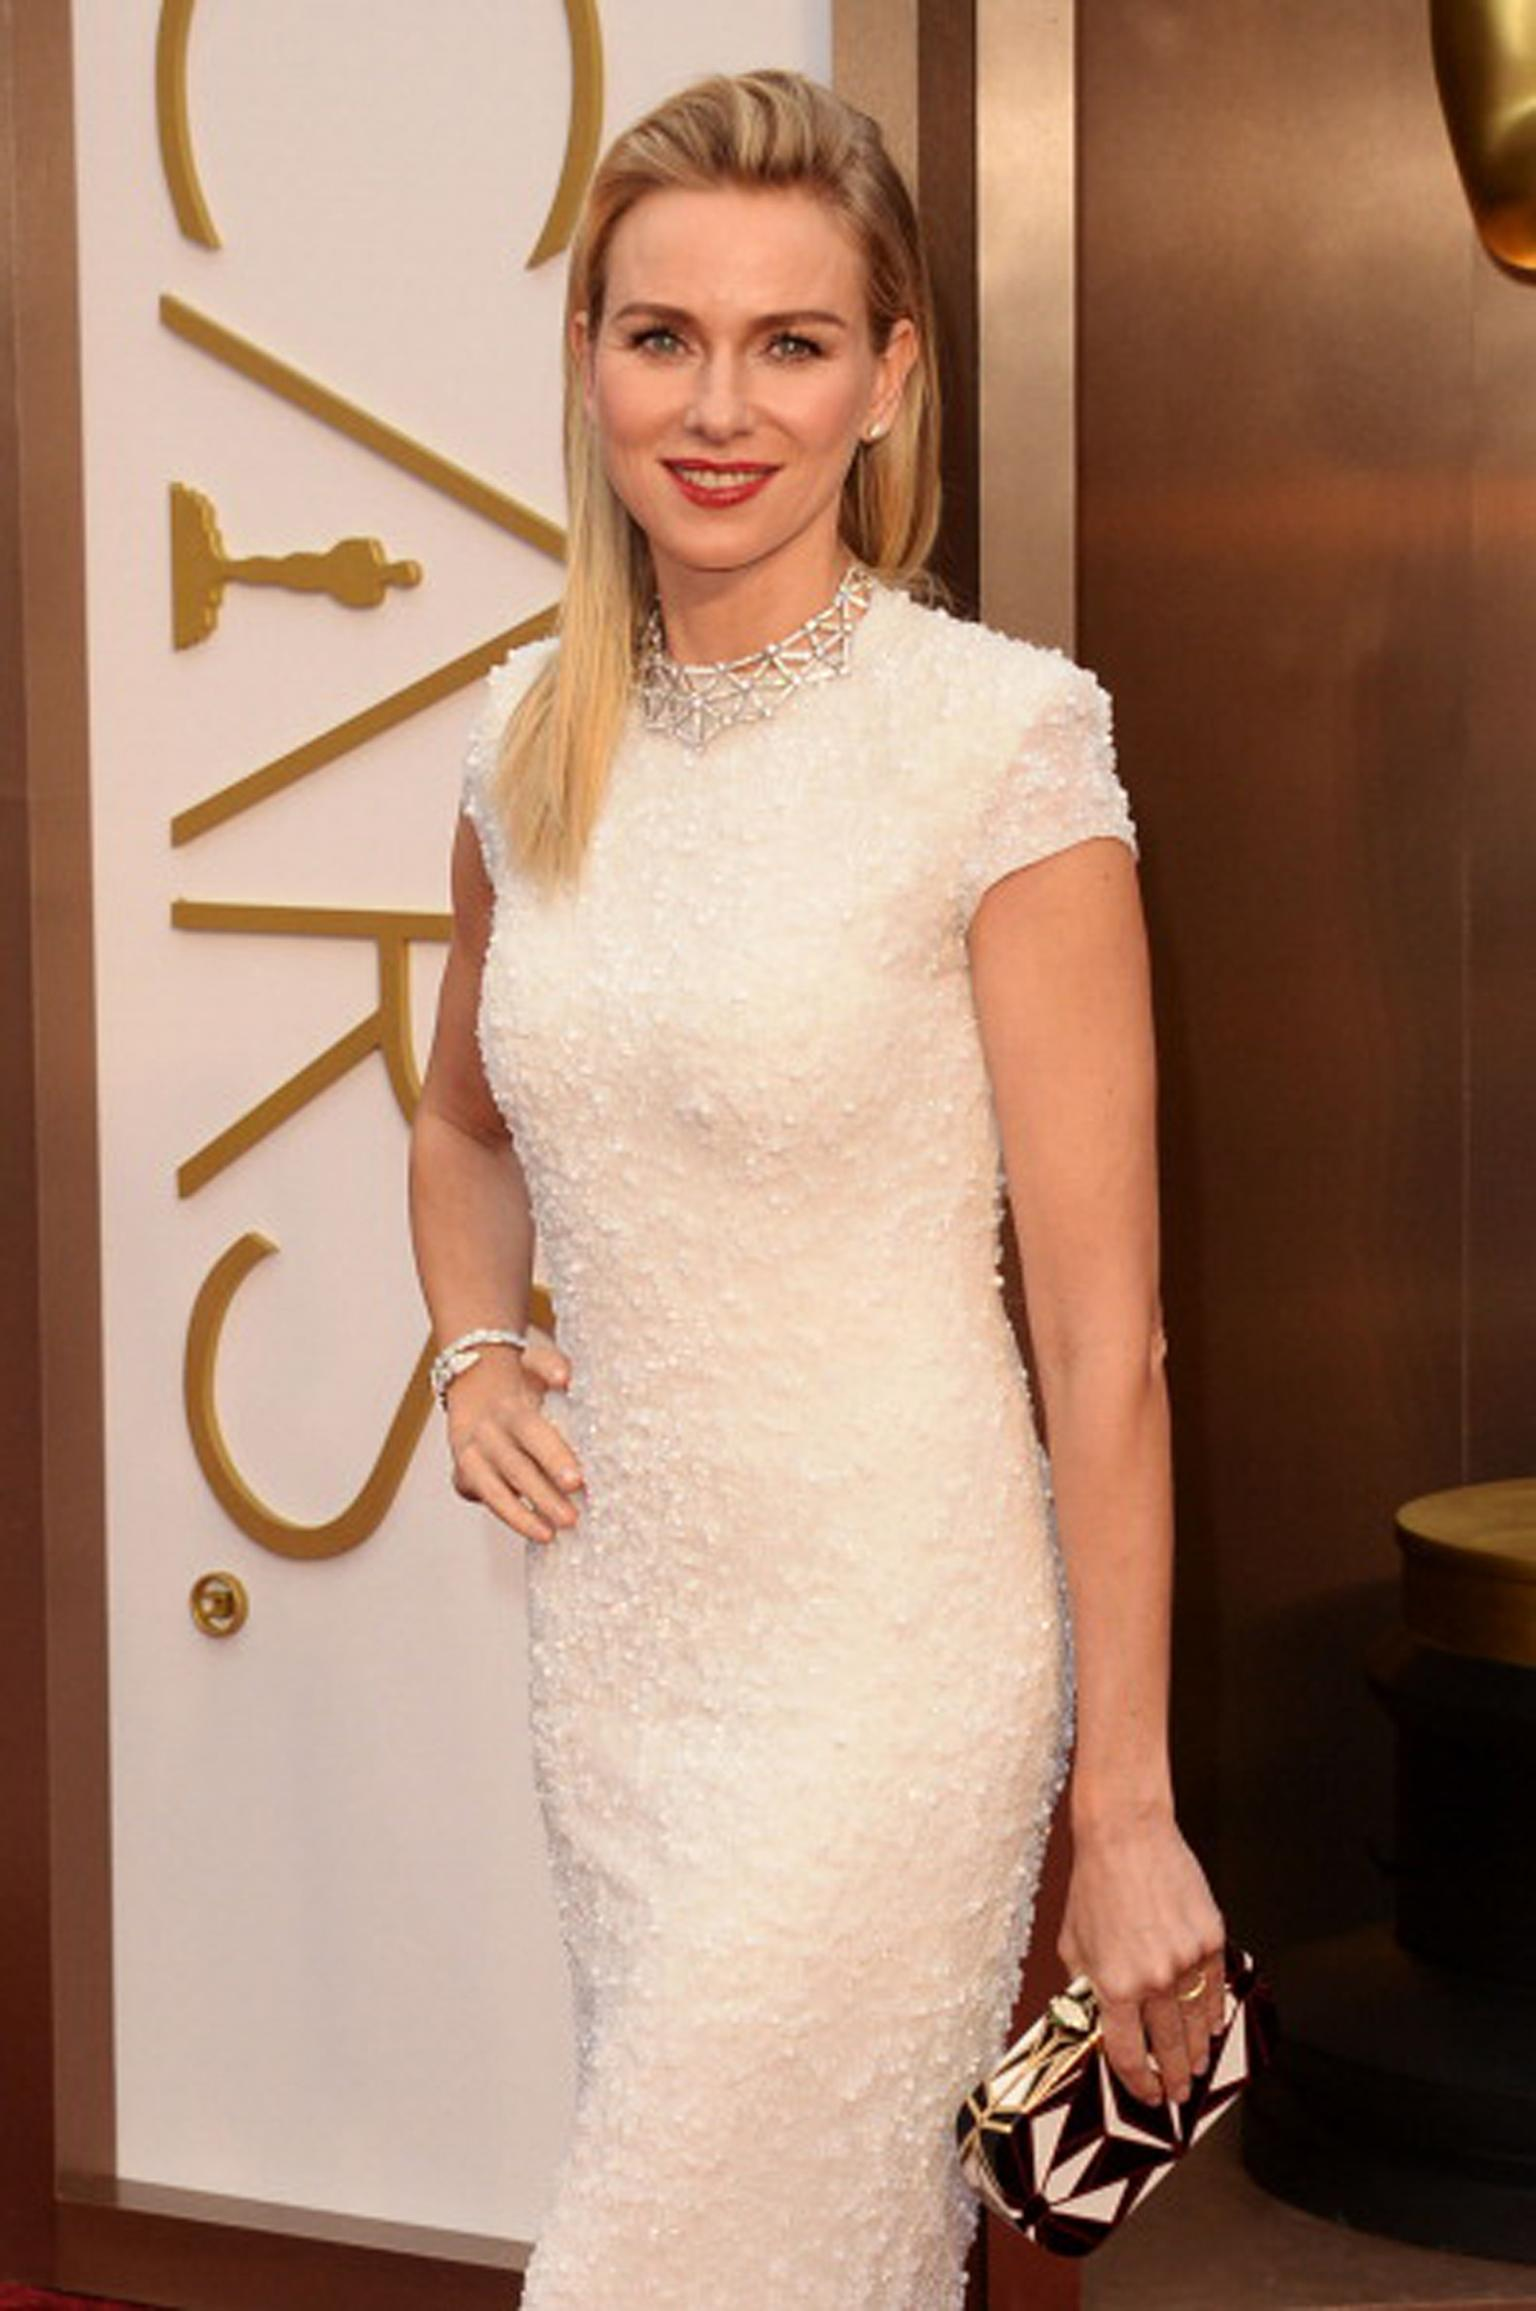 Naomi Watts completed her Bulgari look with diamond stud earrings, a Serpenti white gold bracelet and Serpenti miniaudiere clutch